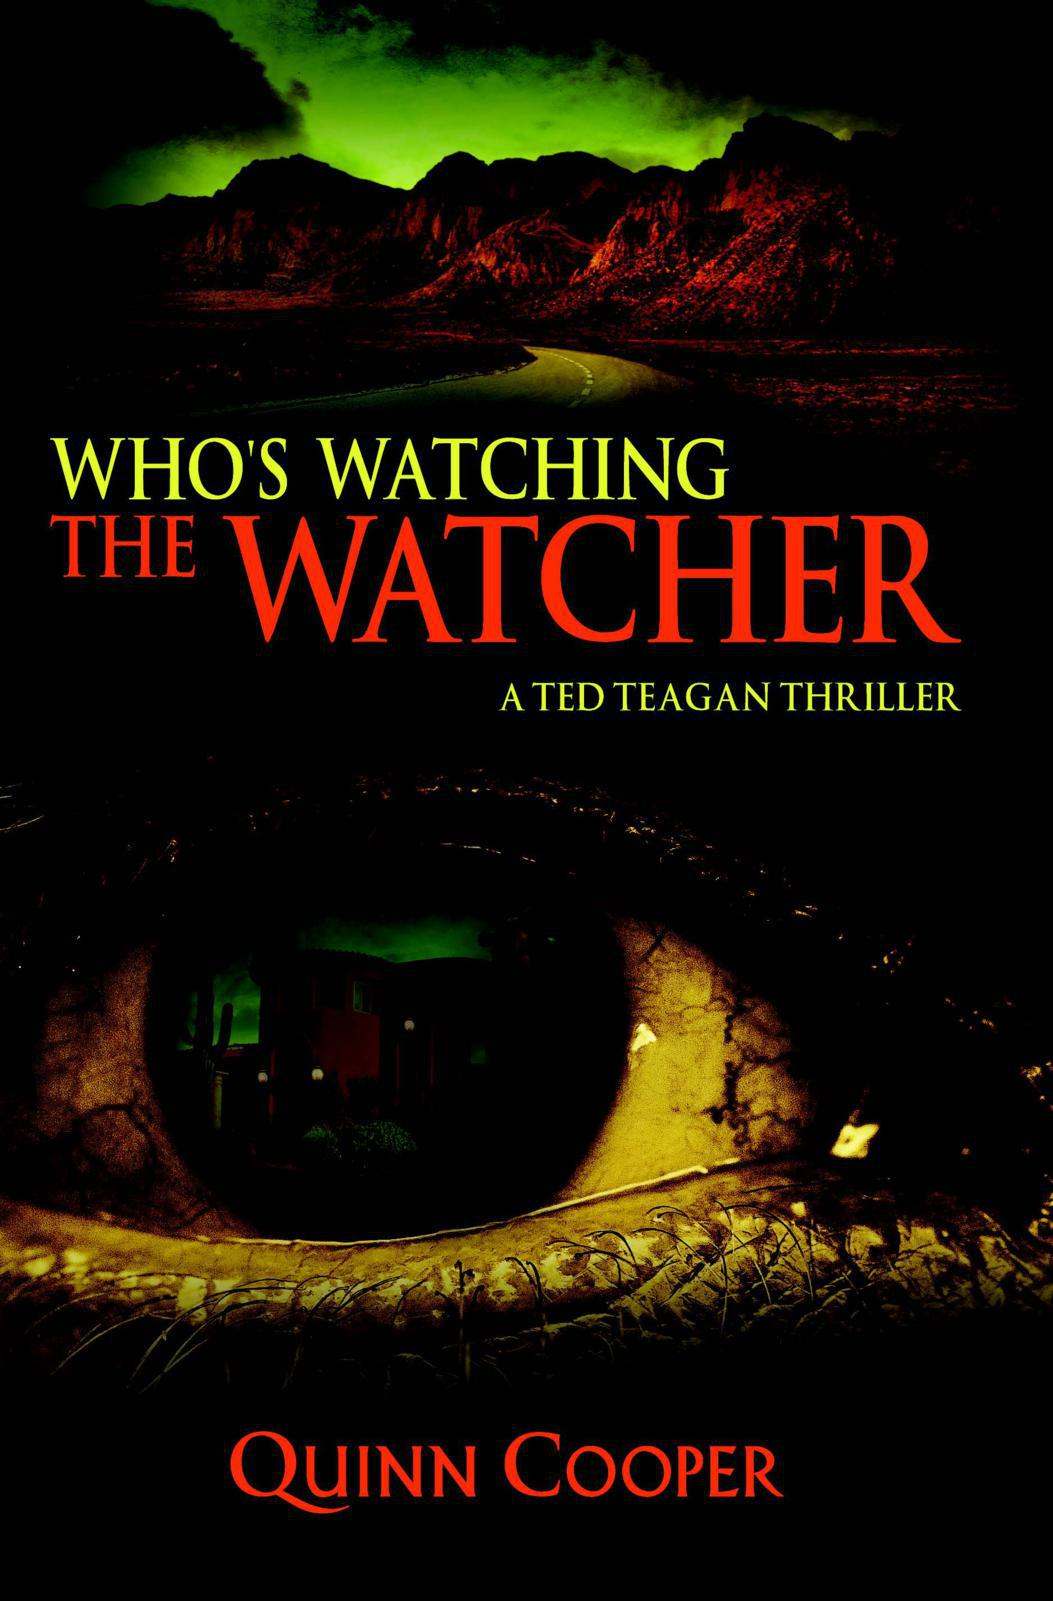 Who's Watching the Watcher